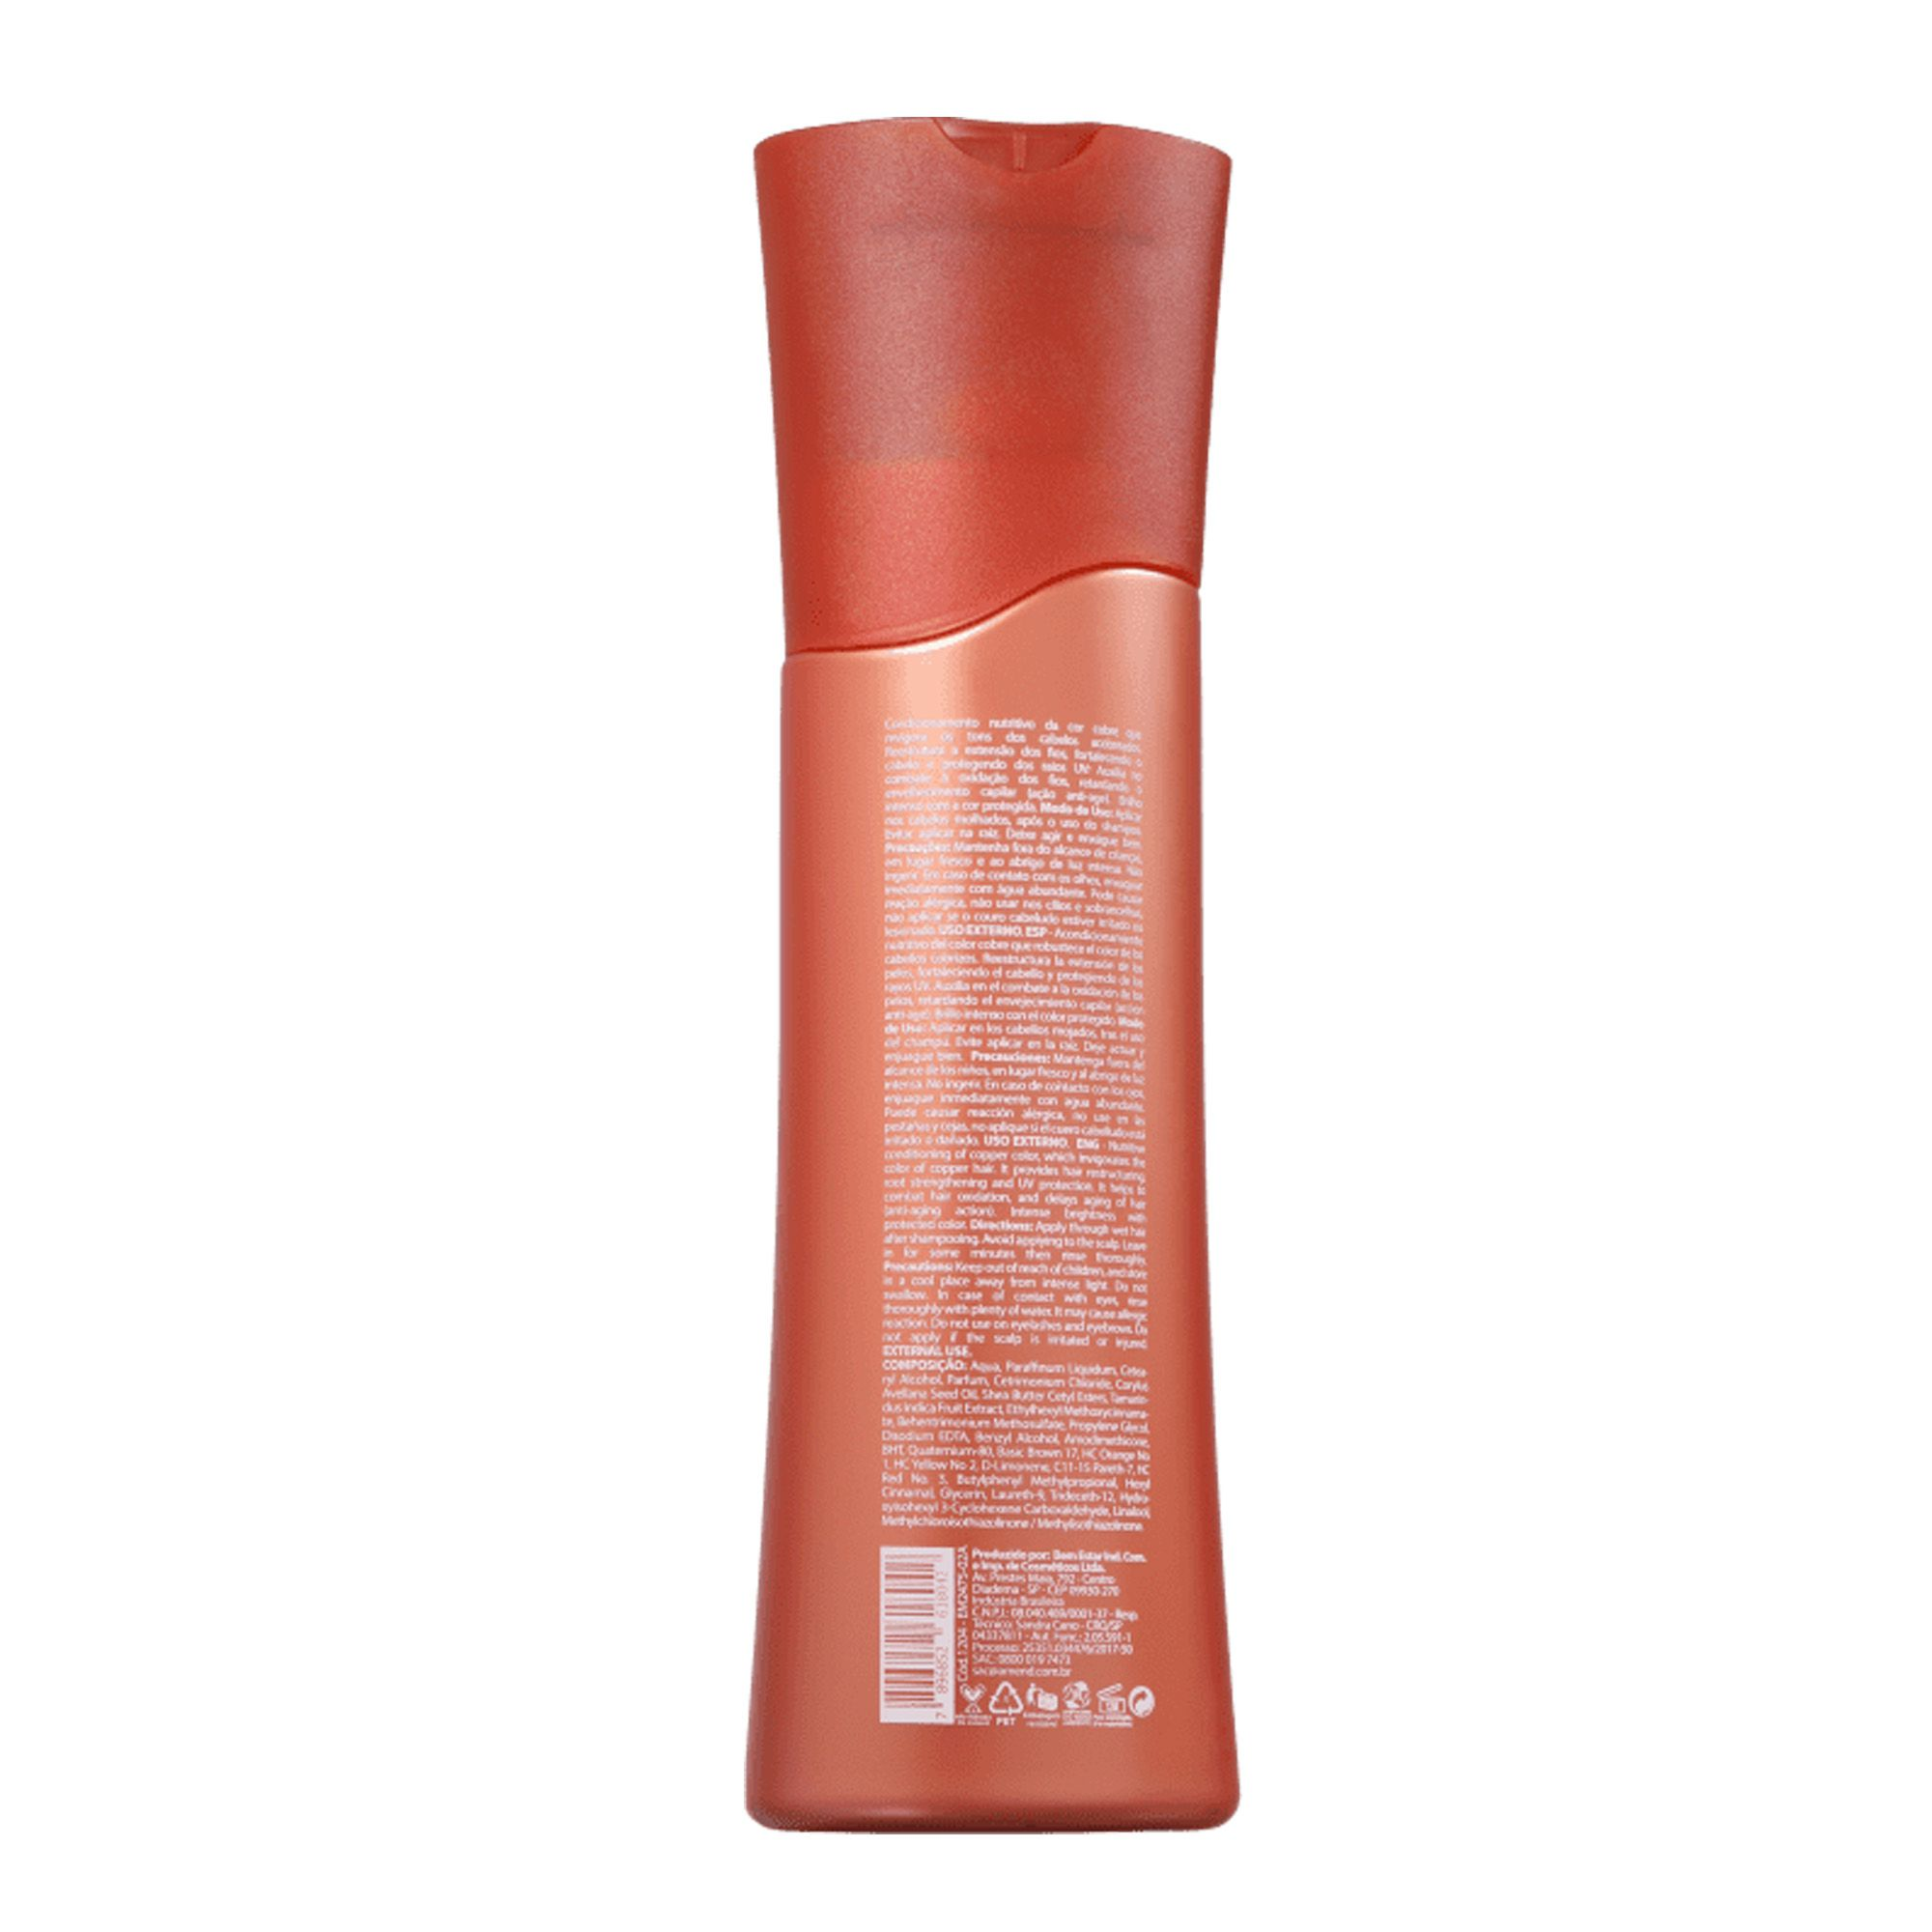 Condicionador Realce Da Cor Cobre Effect - 250ml Amend